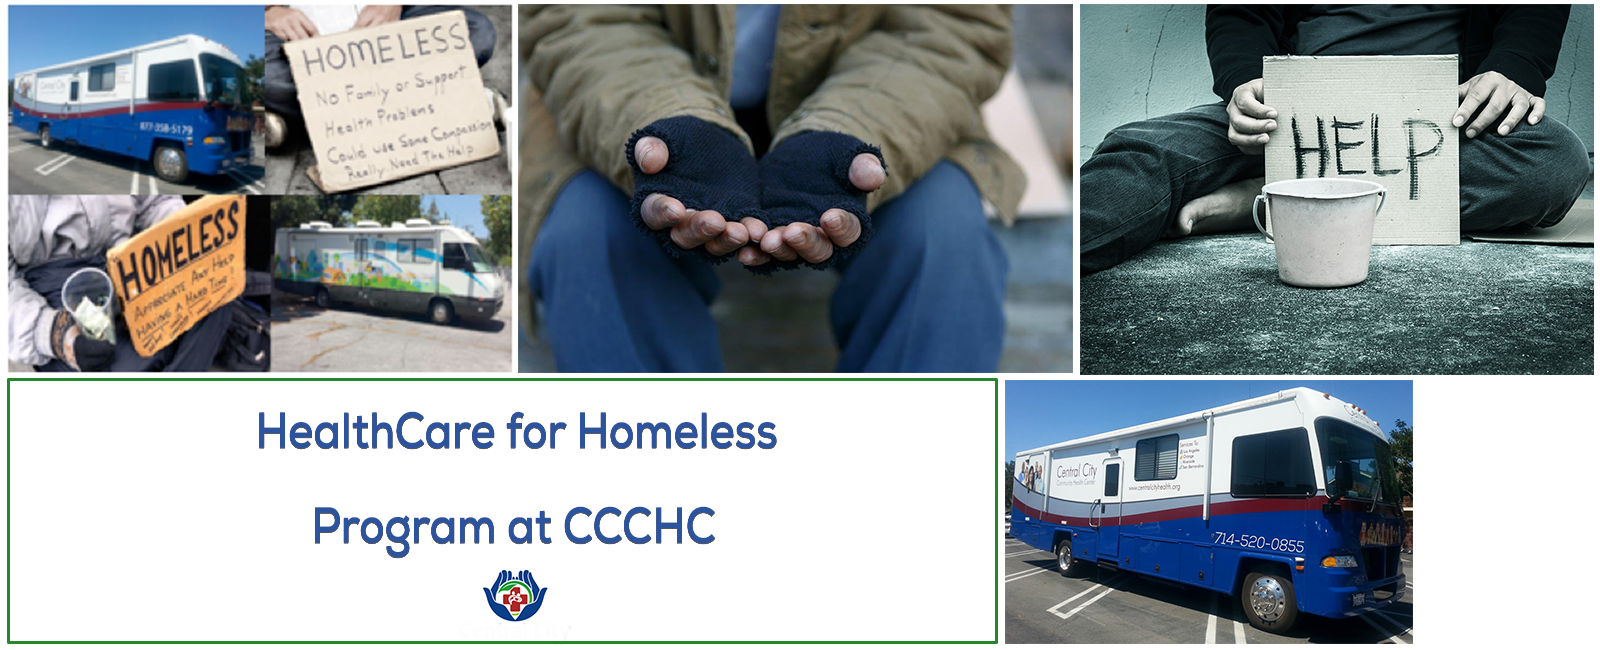 Images of homeless signs CCCHC mobile units and hellp sign for slide on CCCHC HealthCare for Homeless